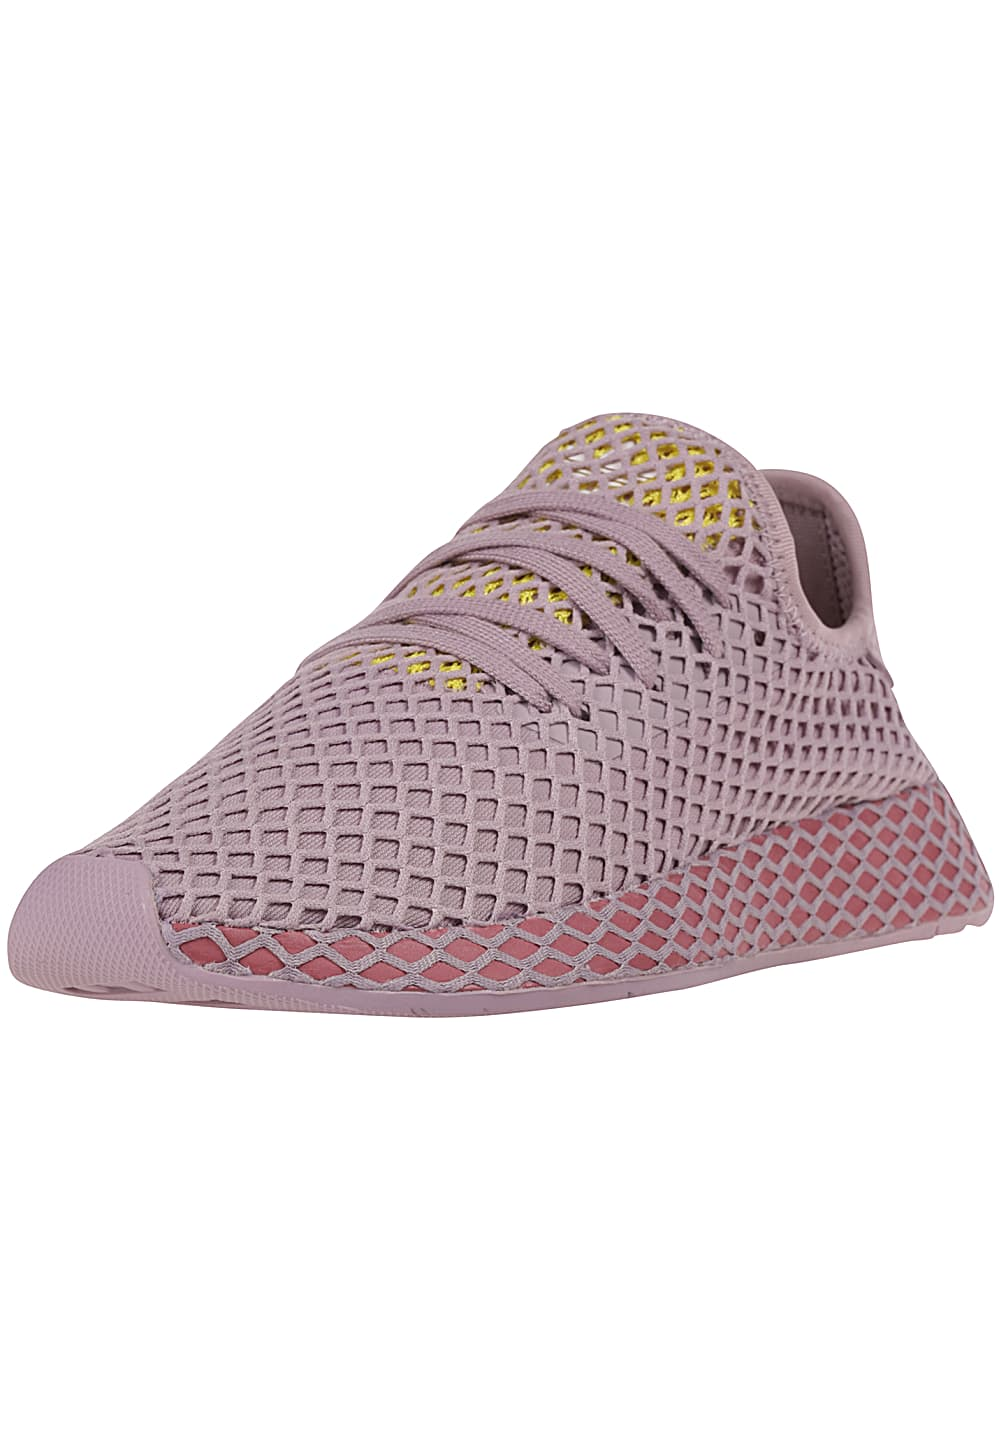 half off 1e3ec bf498 Next. -5%. ADIDAS ORIGINALS. Deerupt Runner - Zapatillas para Mujeres